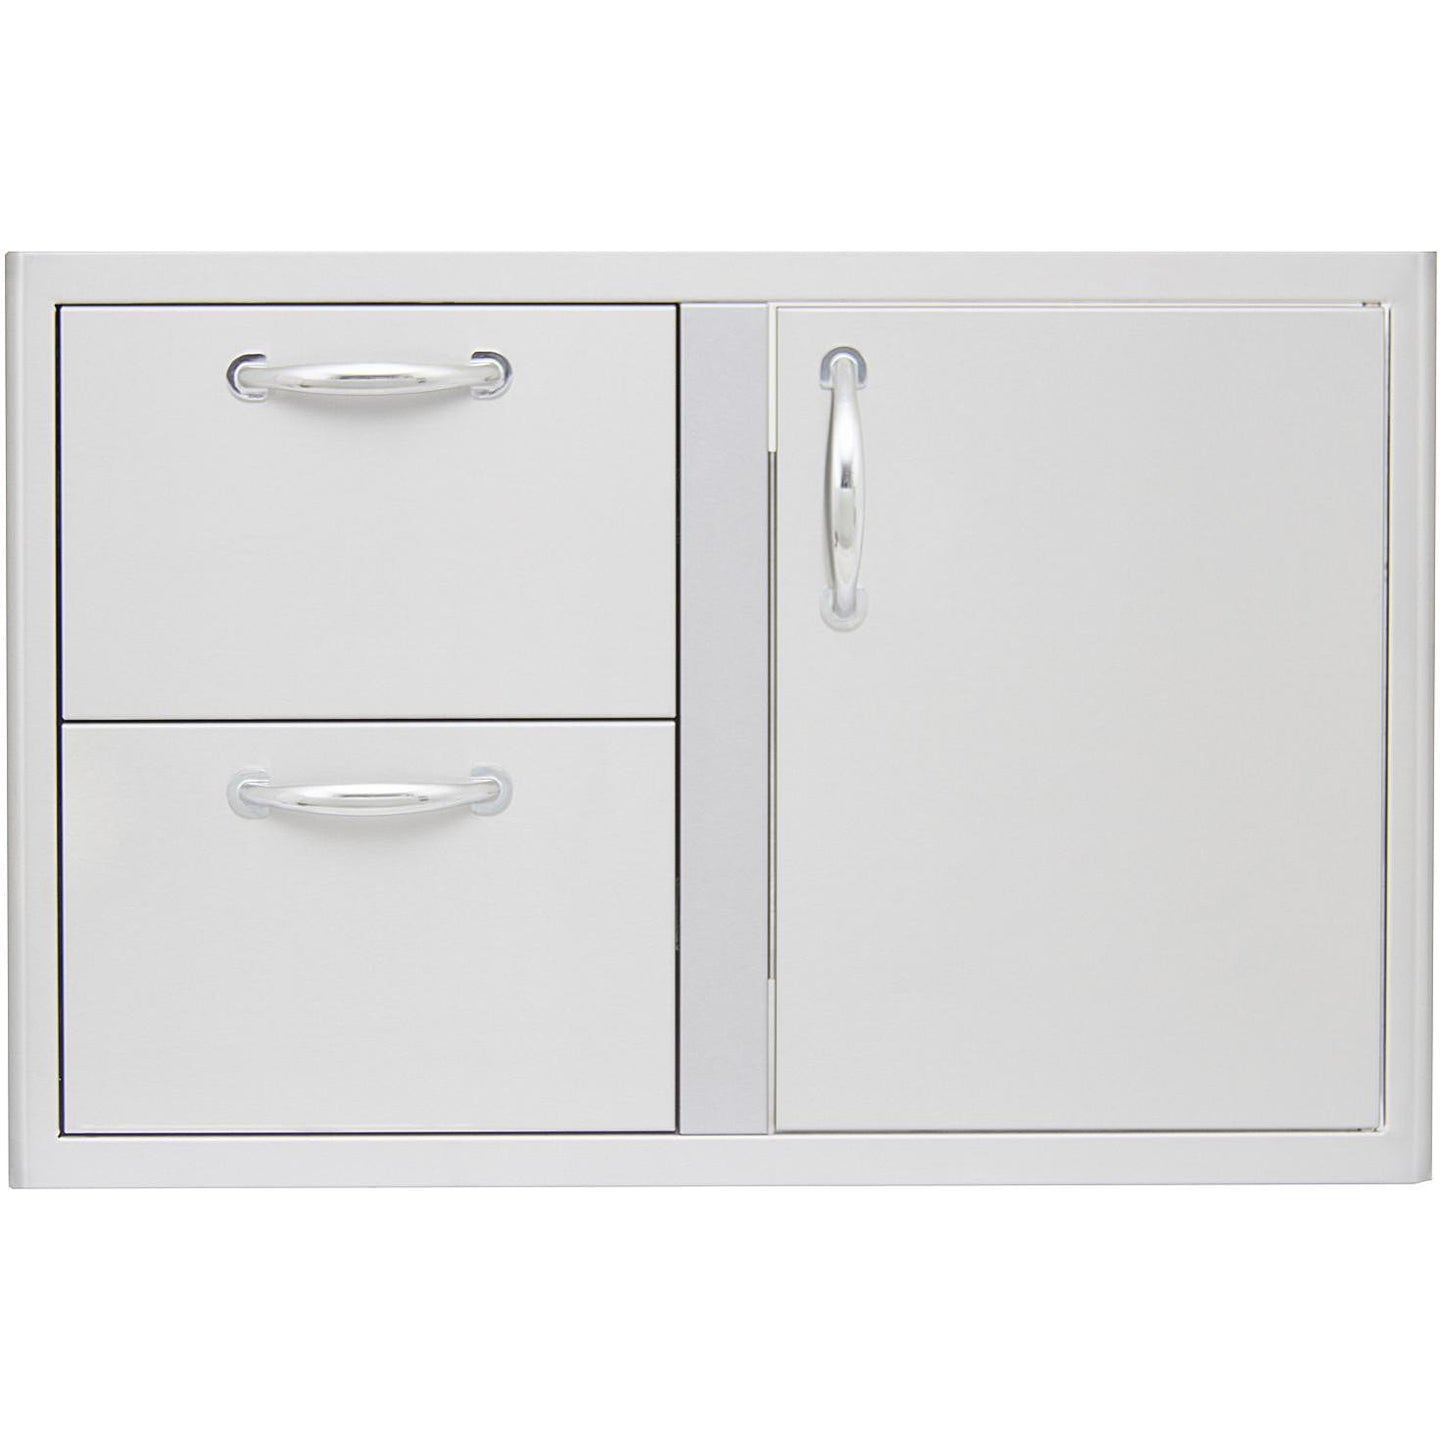 Blaze 32-Inch Access Door & Double Drawer Combo - BLZ-DDC-R - The Garden District